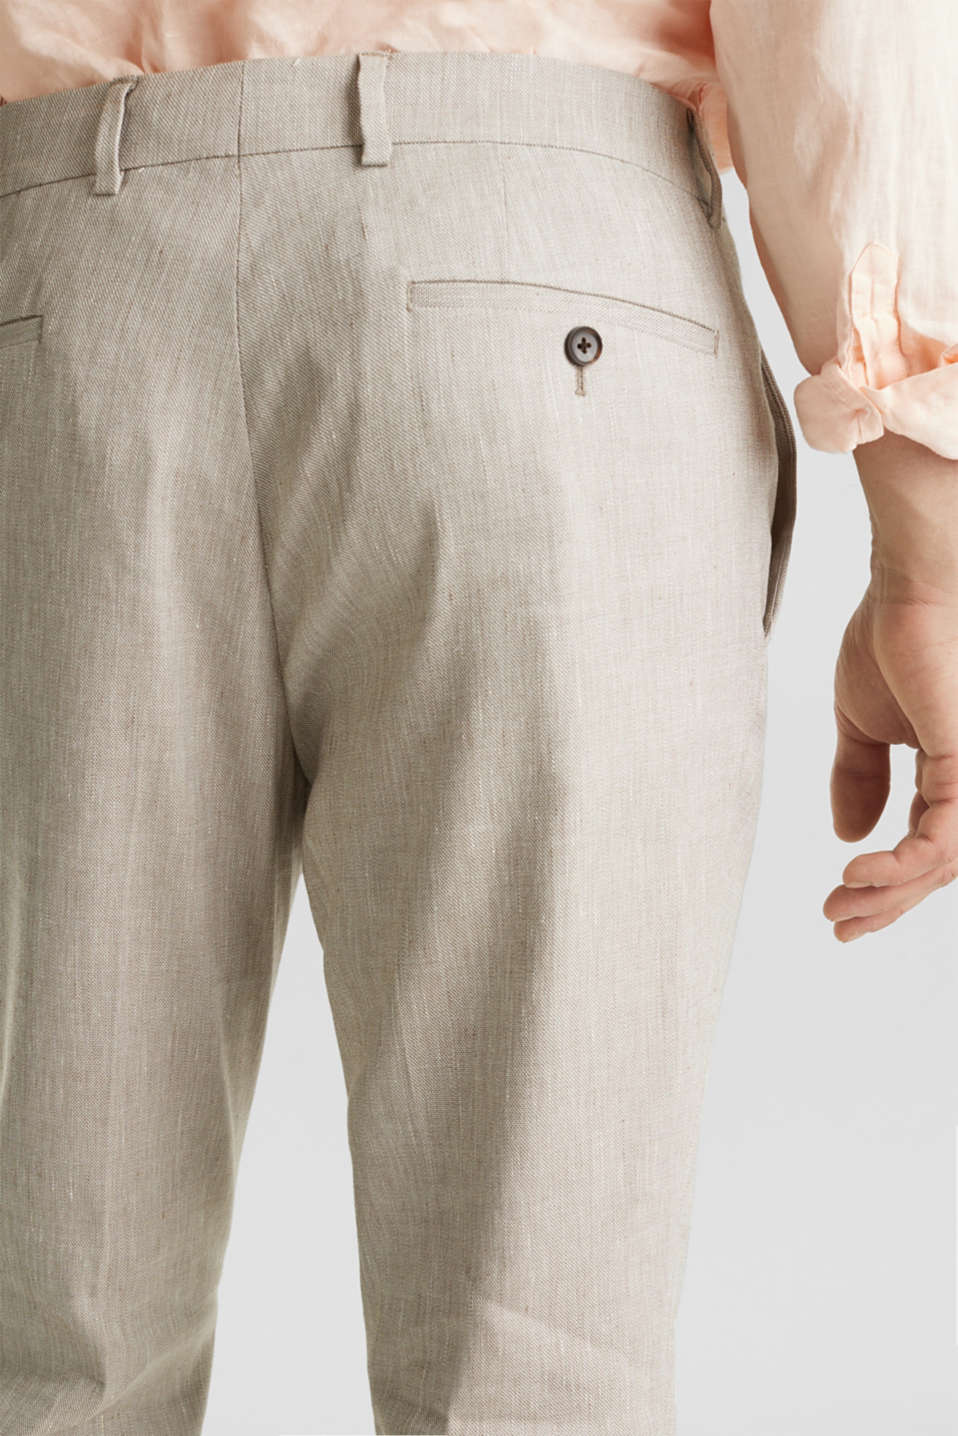 End-on-end linen blend trousers, SAND 5, detail image number 3